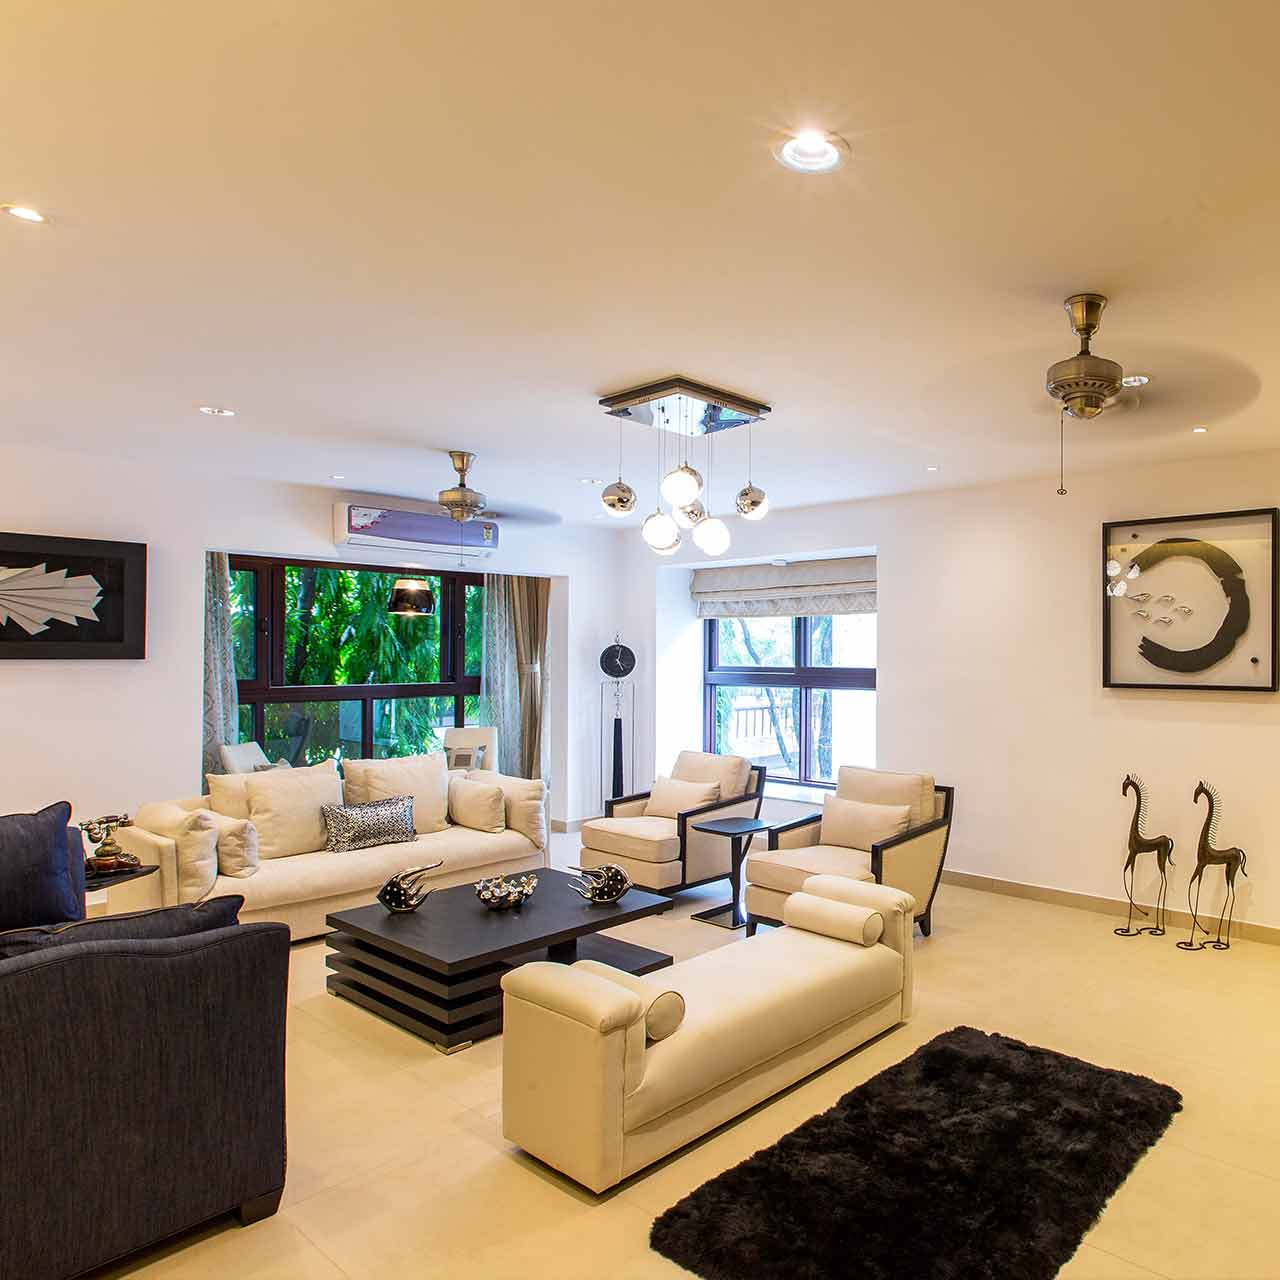 Traditional style living room design with elegant furnishing, textured rugs, bright statement lighting, and bright colour schemes